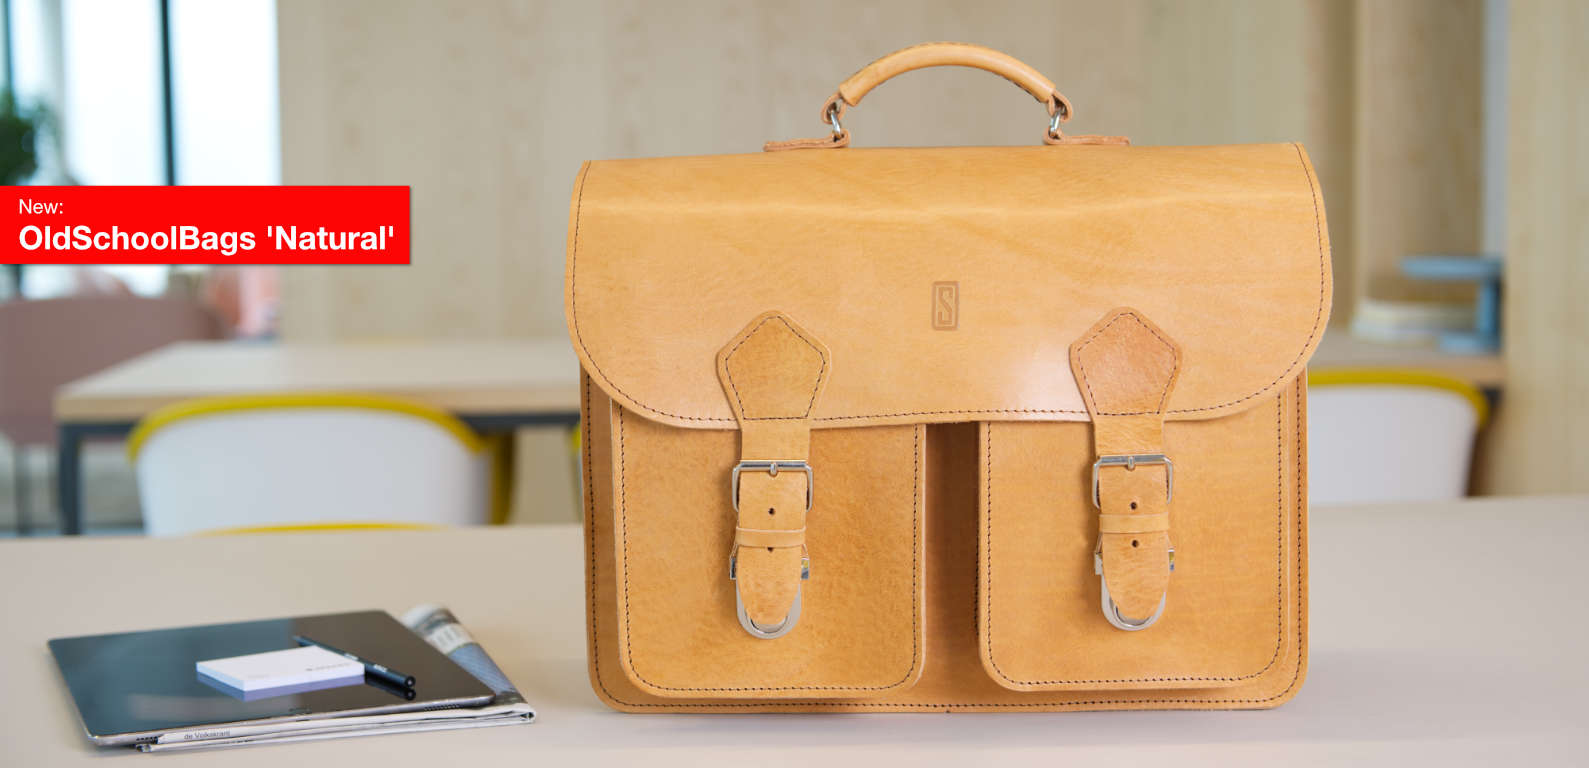 Leather Satchels - OldSchoolBags 'Natural' collection